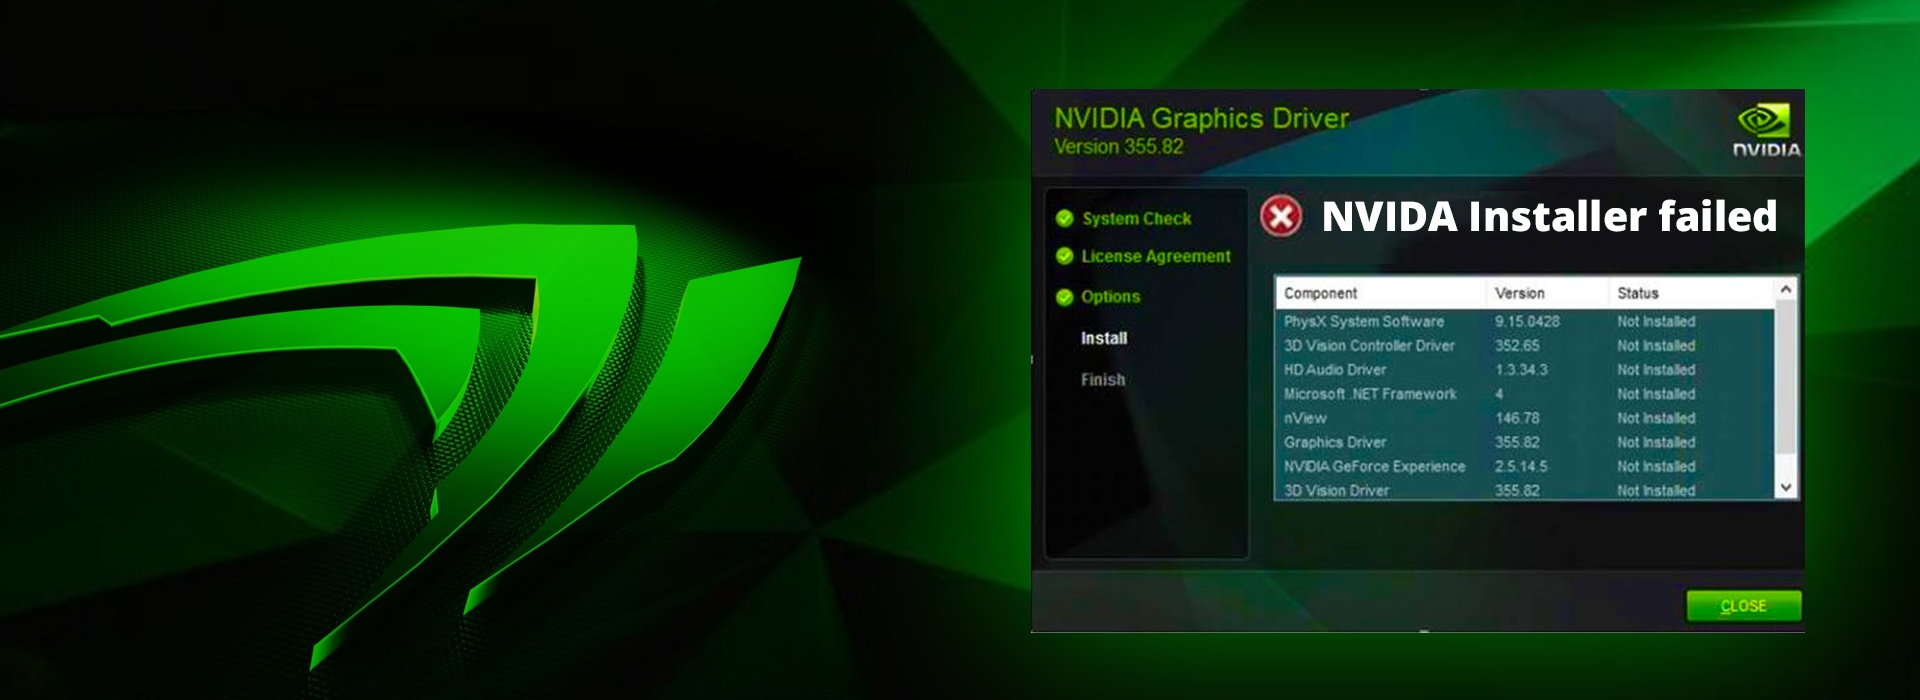 nvidia drivers failing to install windows 10